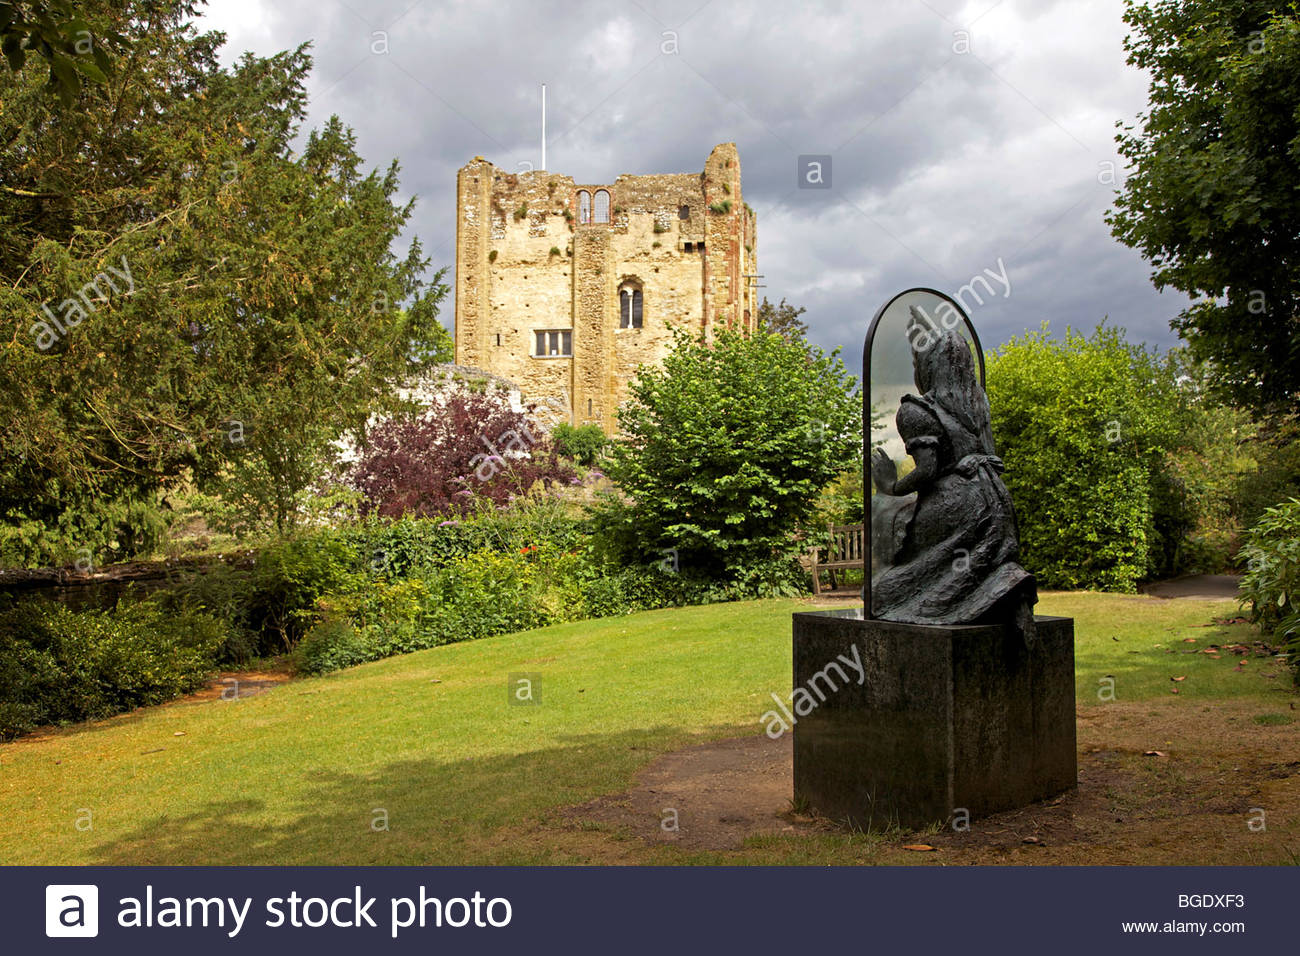 Alice Through the Looking Glass in the grounds of Guildford Castle, David Ball / Alamy Stock Photo